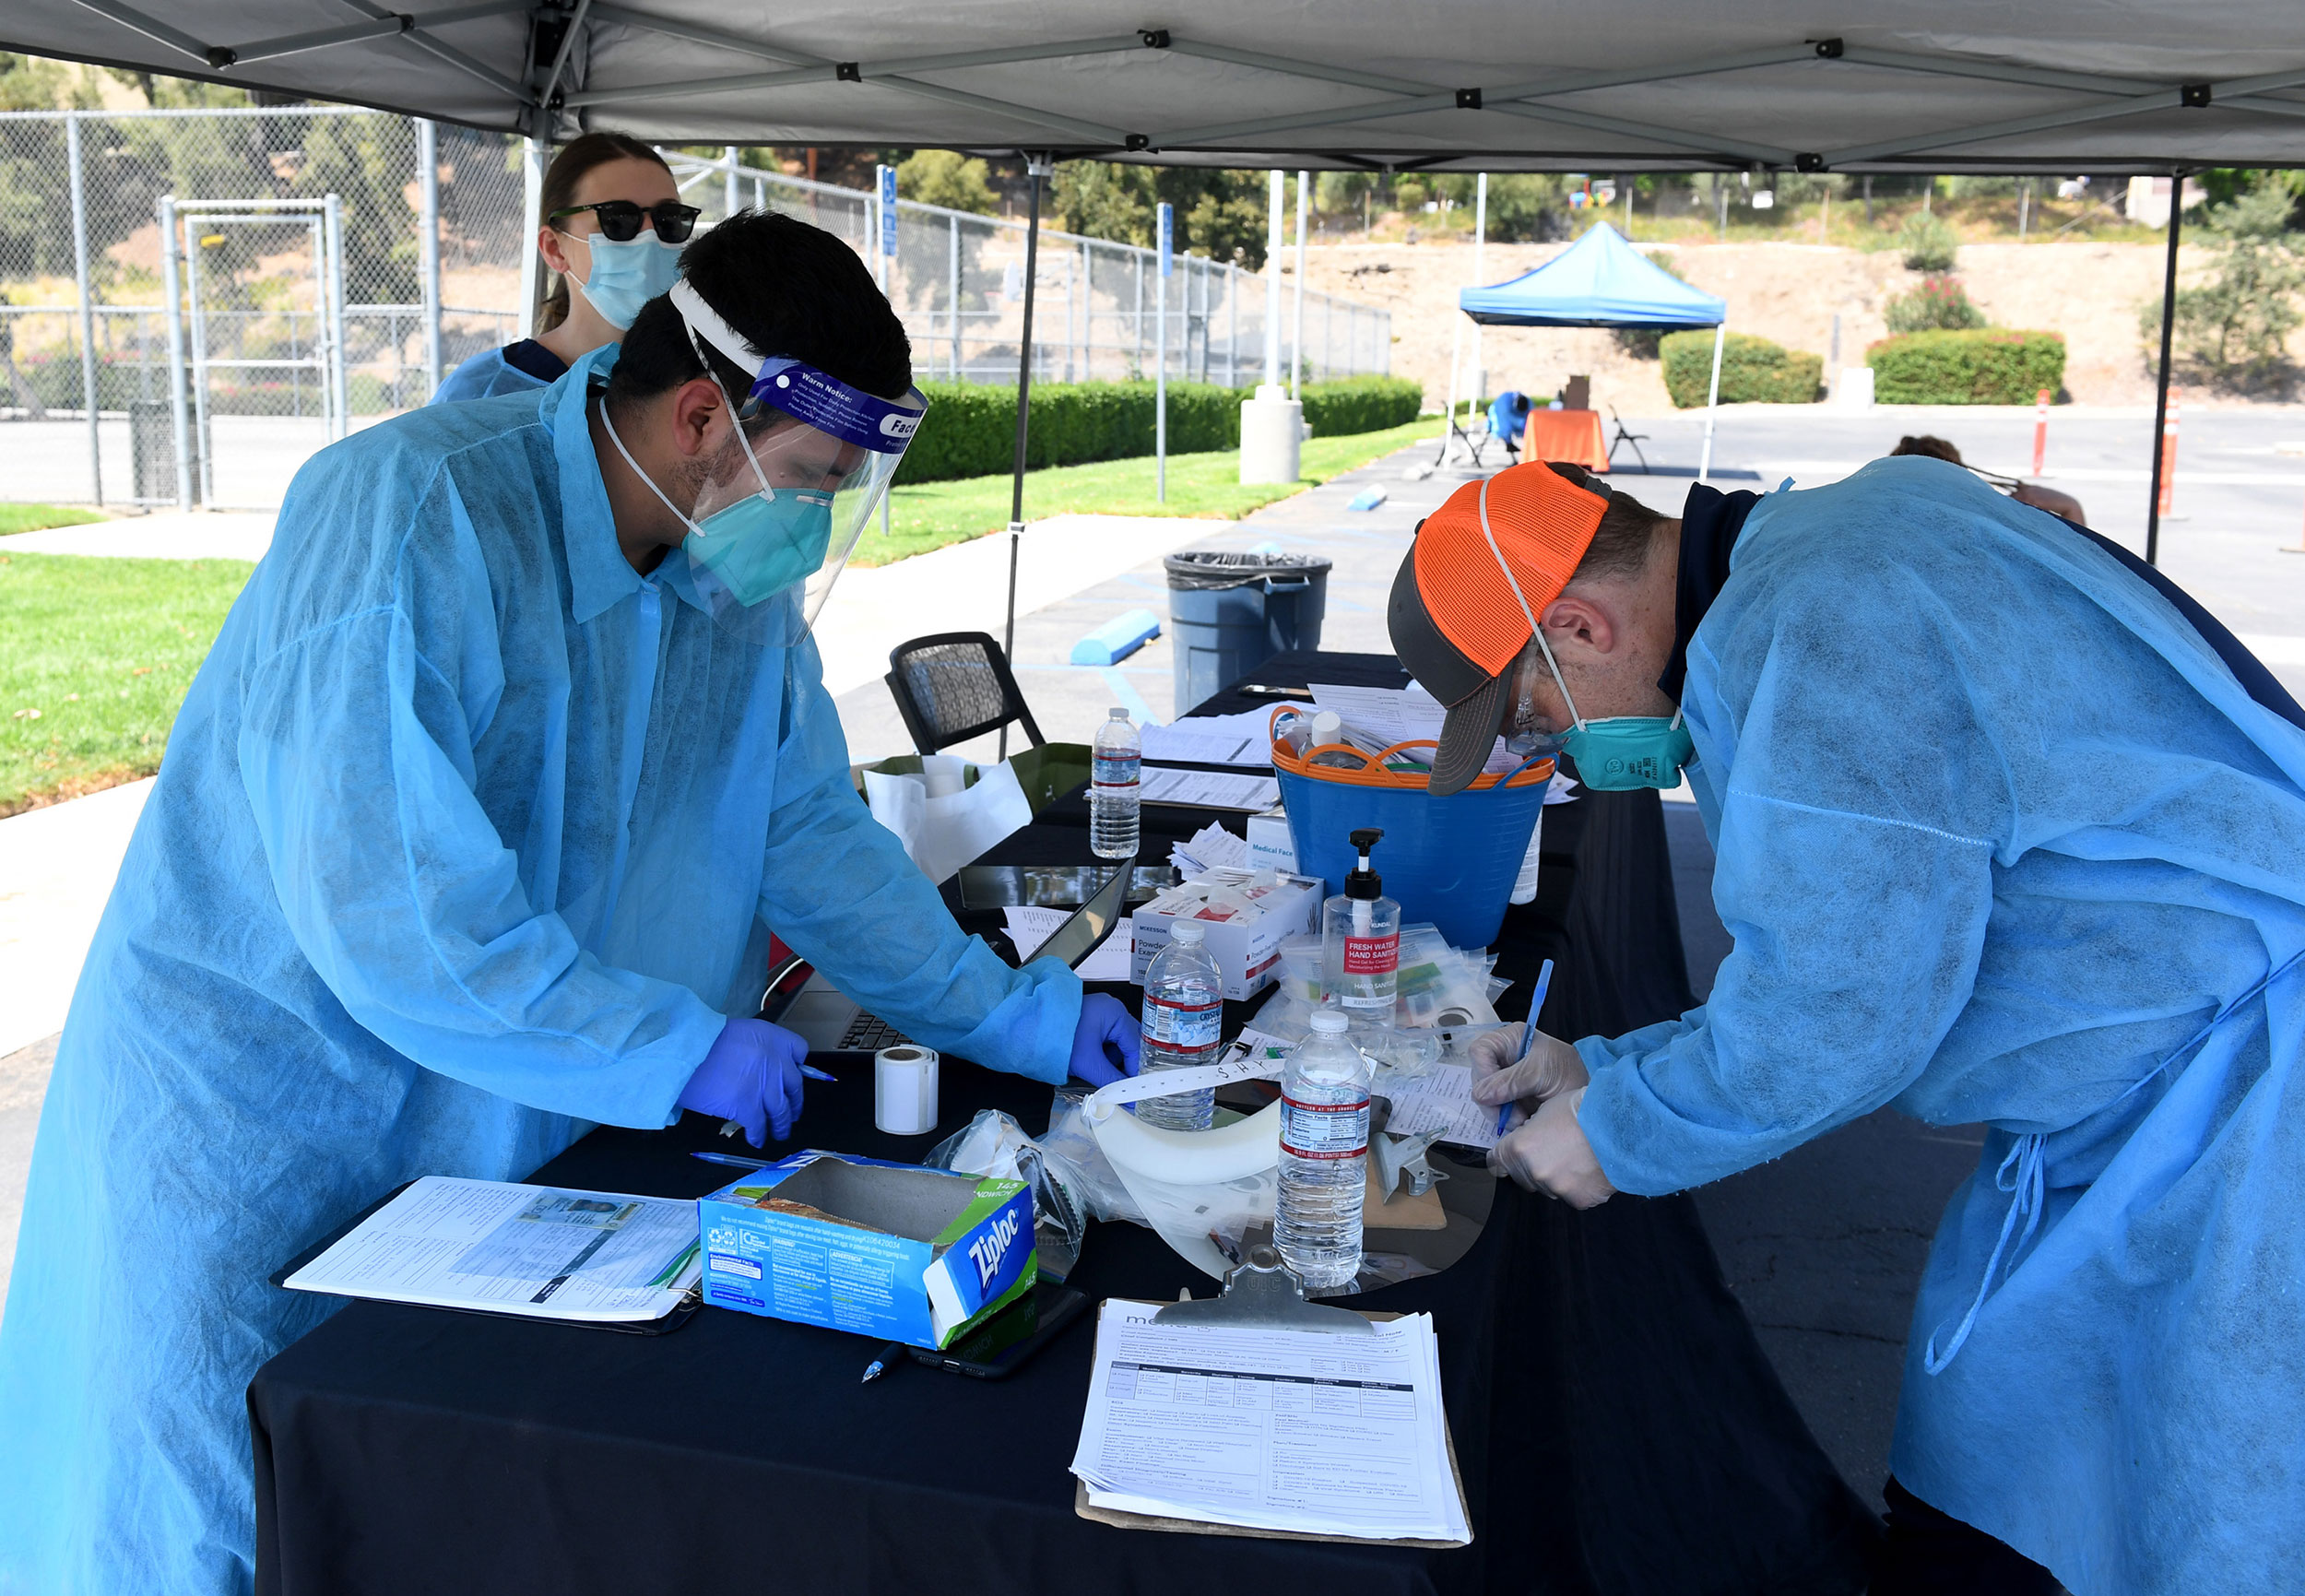 Mend Urgent Care workers perform drive-up Covid-19 testing at Woodbury University on August 24 in Burbank, California.